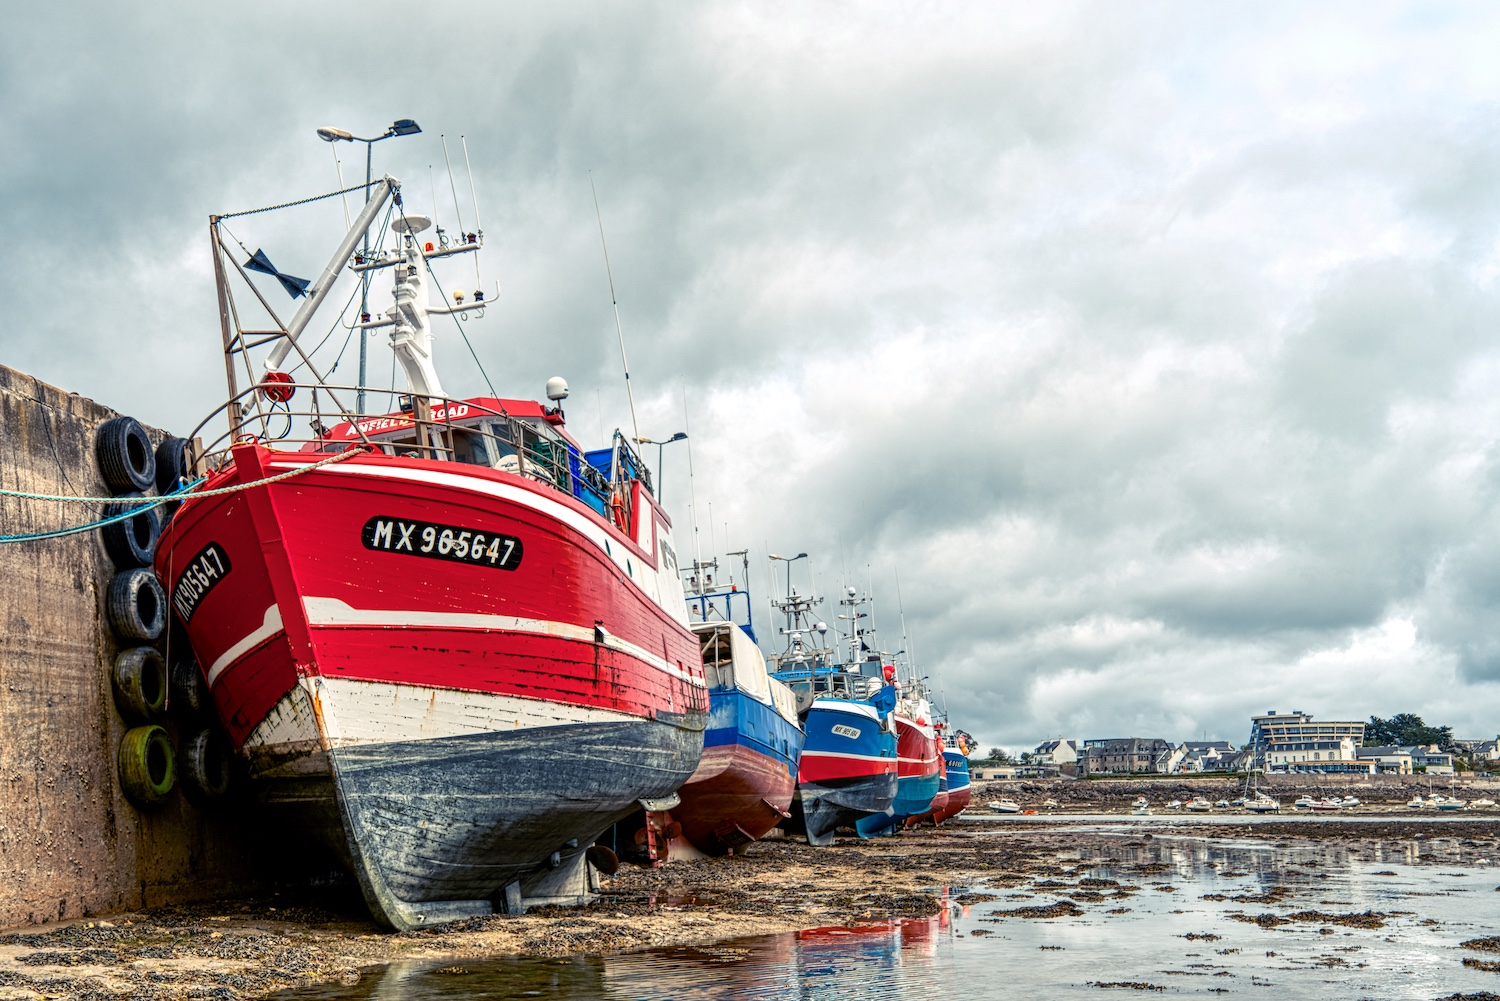 Fishing boats are waiting for the tide in the port of Roscoff